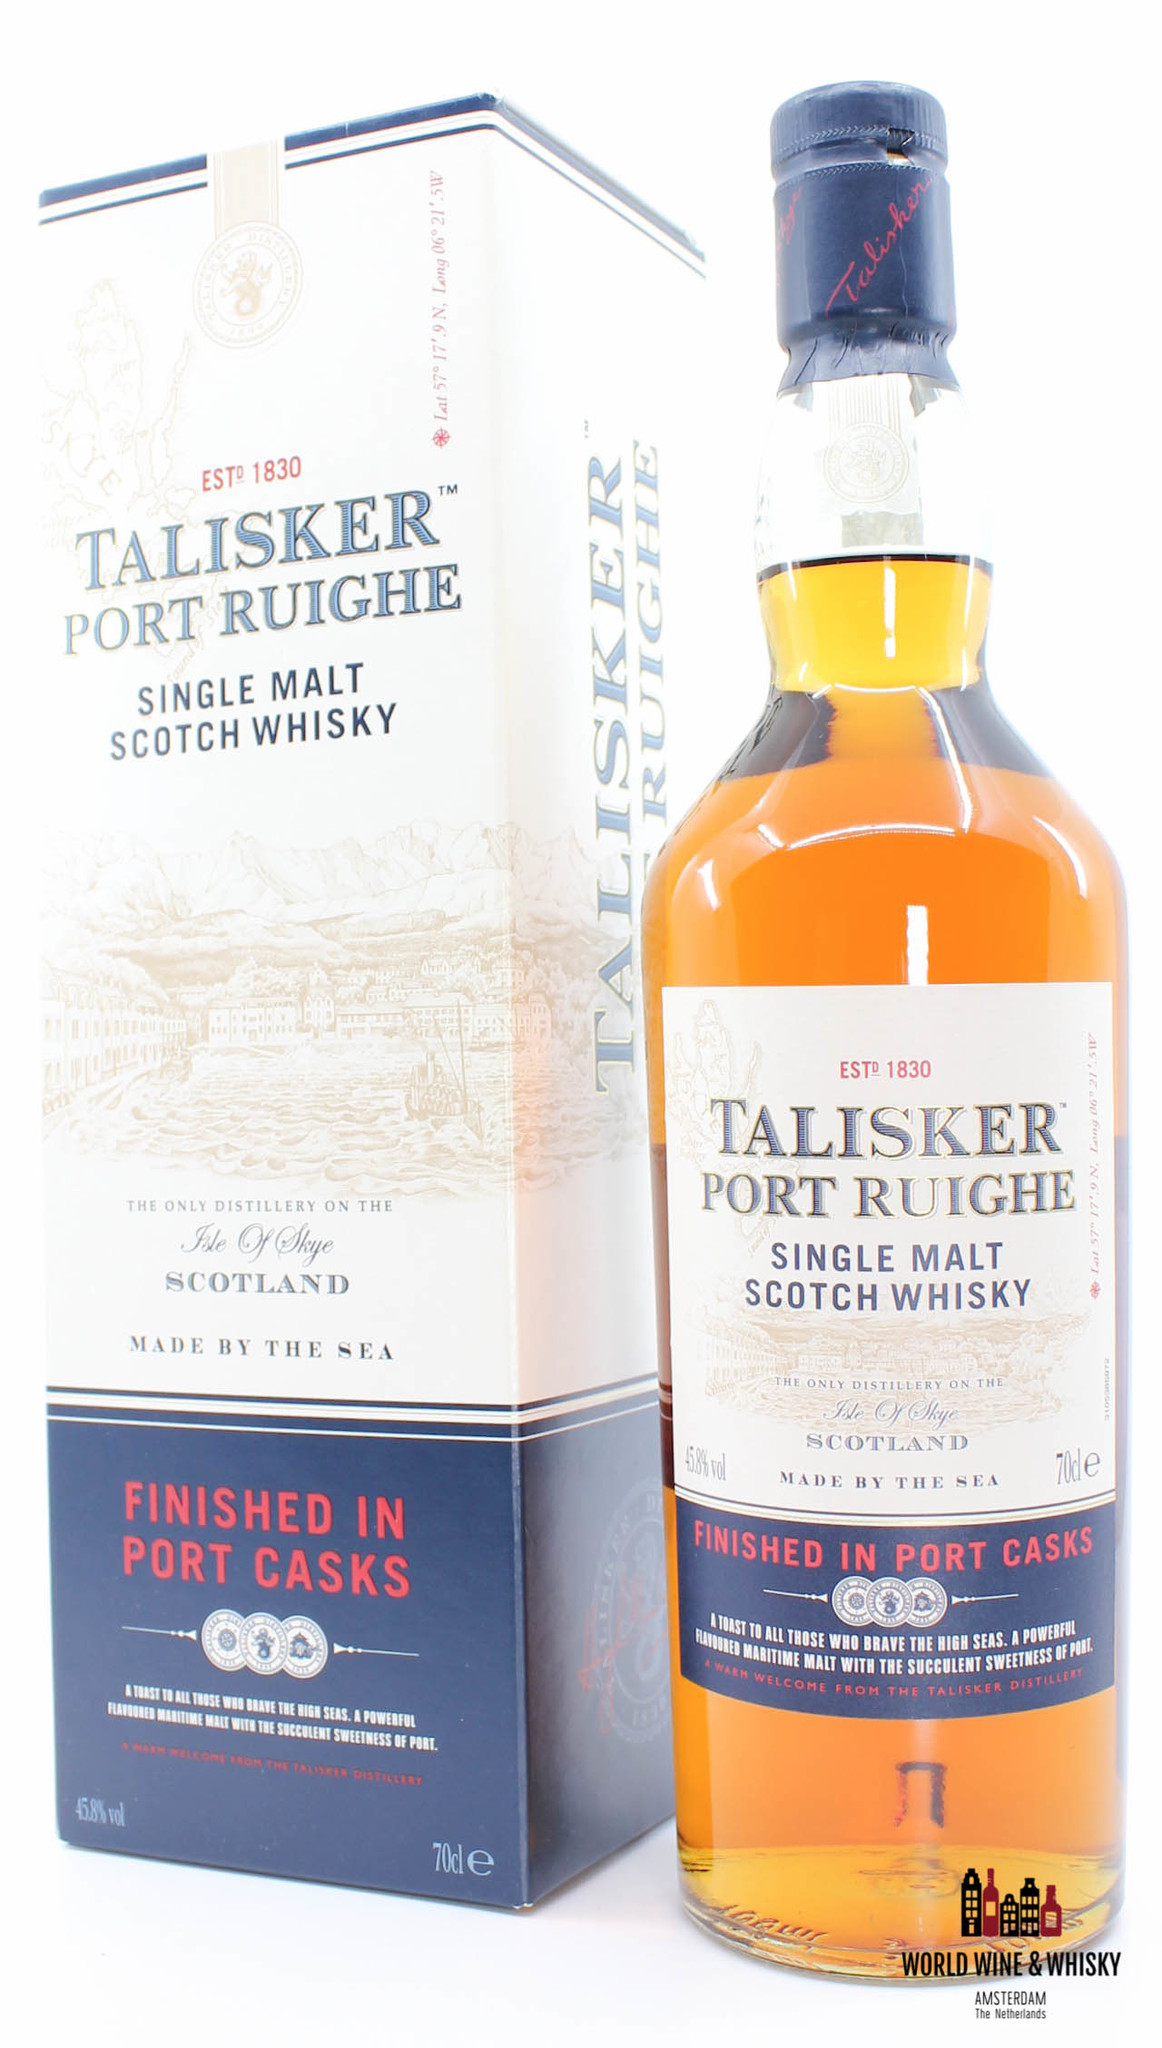 Talisker Talisker Port Ruighe 2013 - Made by the Sea 45.8% 700ml